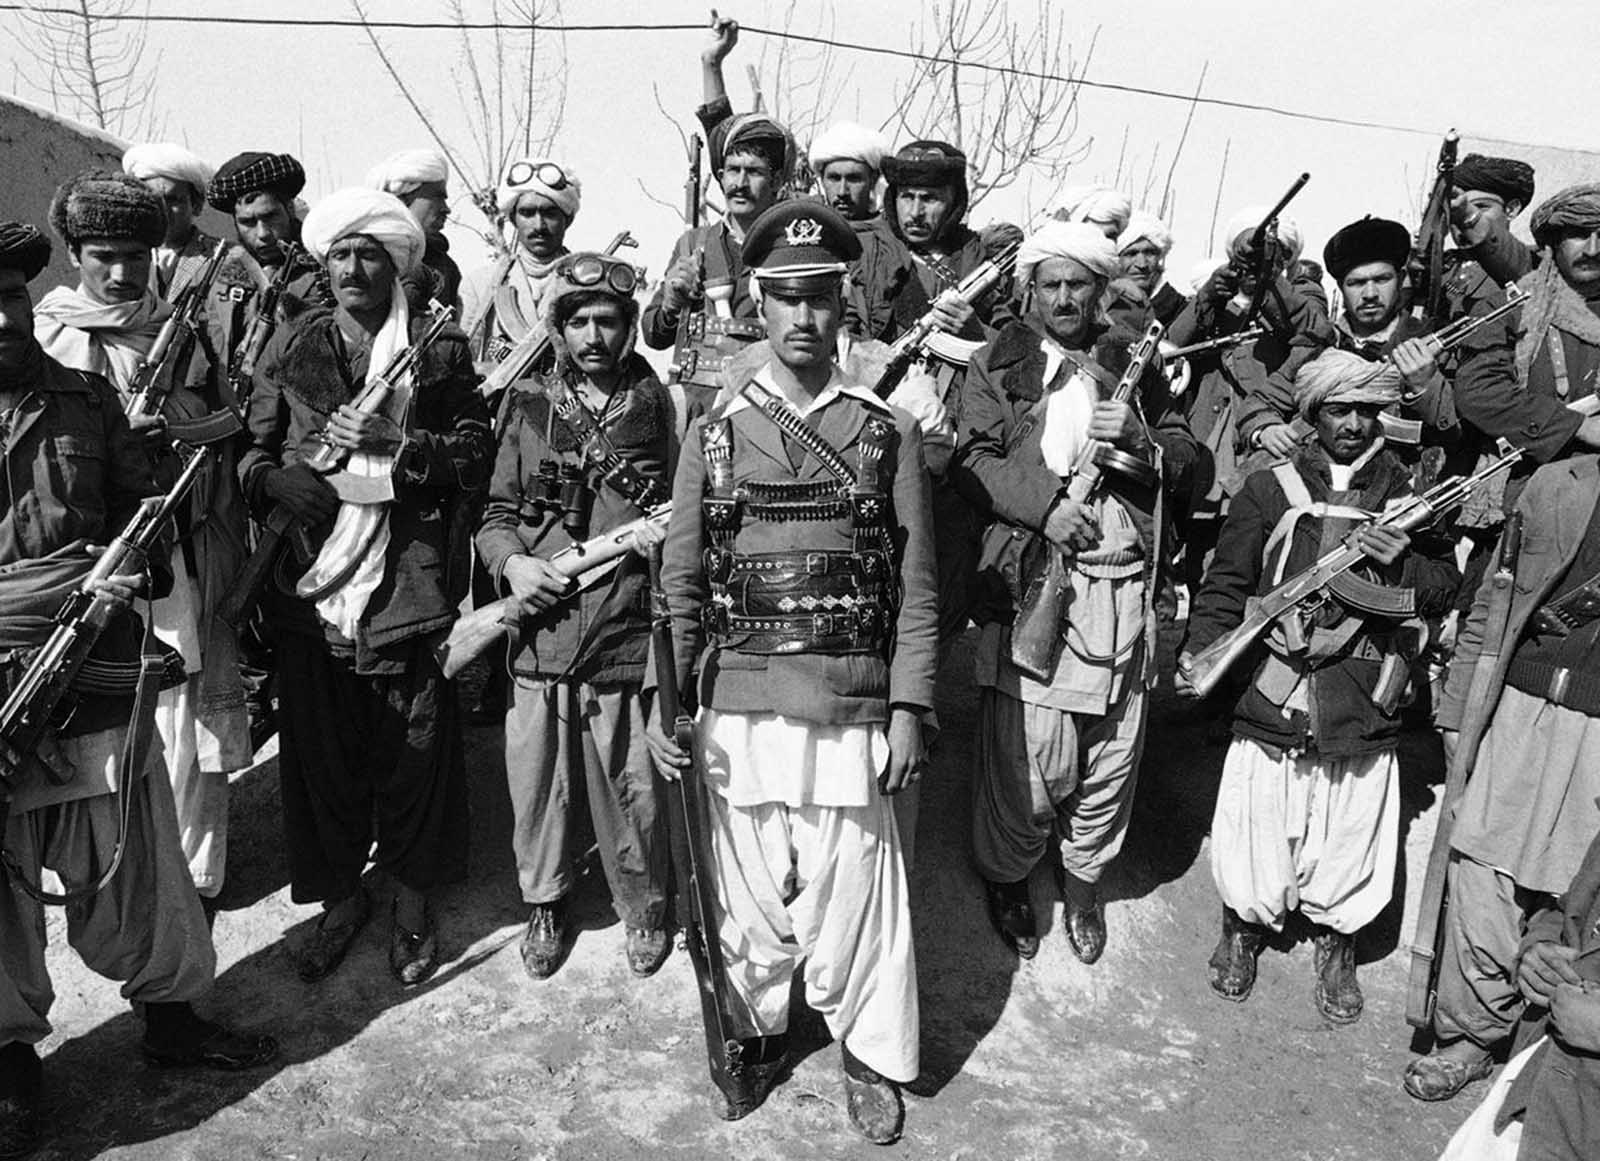 A mujahideen, a captain in the Afghan army before deserting, poses with a group of rebels near Herat, Afghanistan, on February 28, 1980. At the time, it was reported that the Afghan capital of Kabul returned to normal for the first time since bloody anti-Soviet rioting erupted there, killing more than 300 civilians and an unknown number of Soviet and Afghan soldiers.